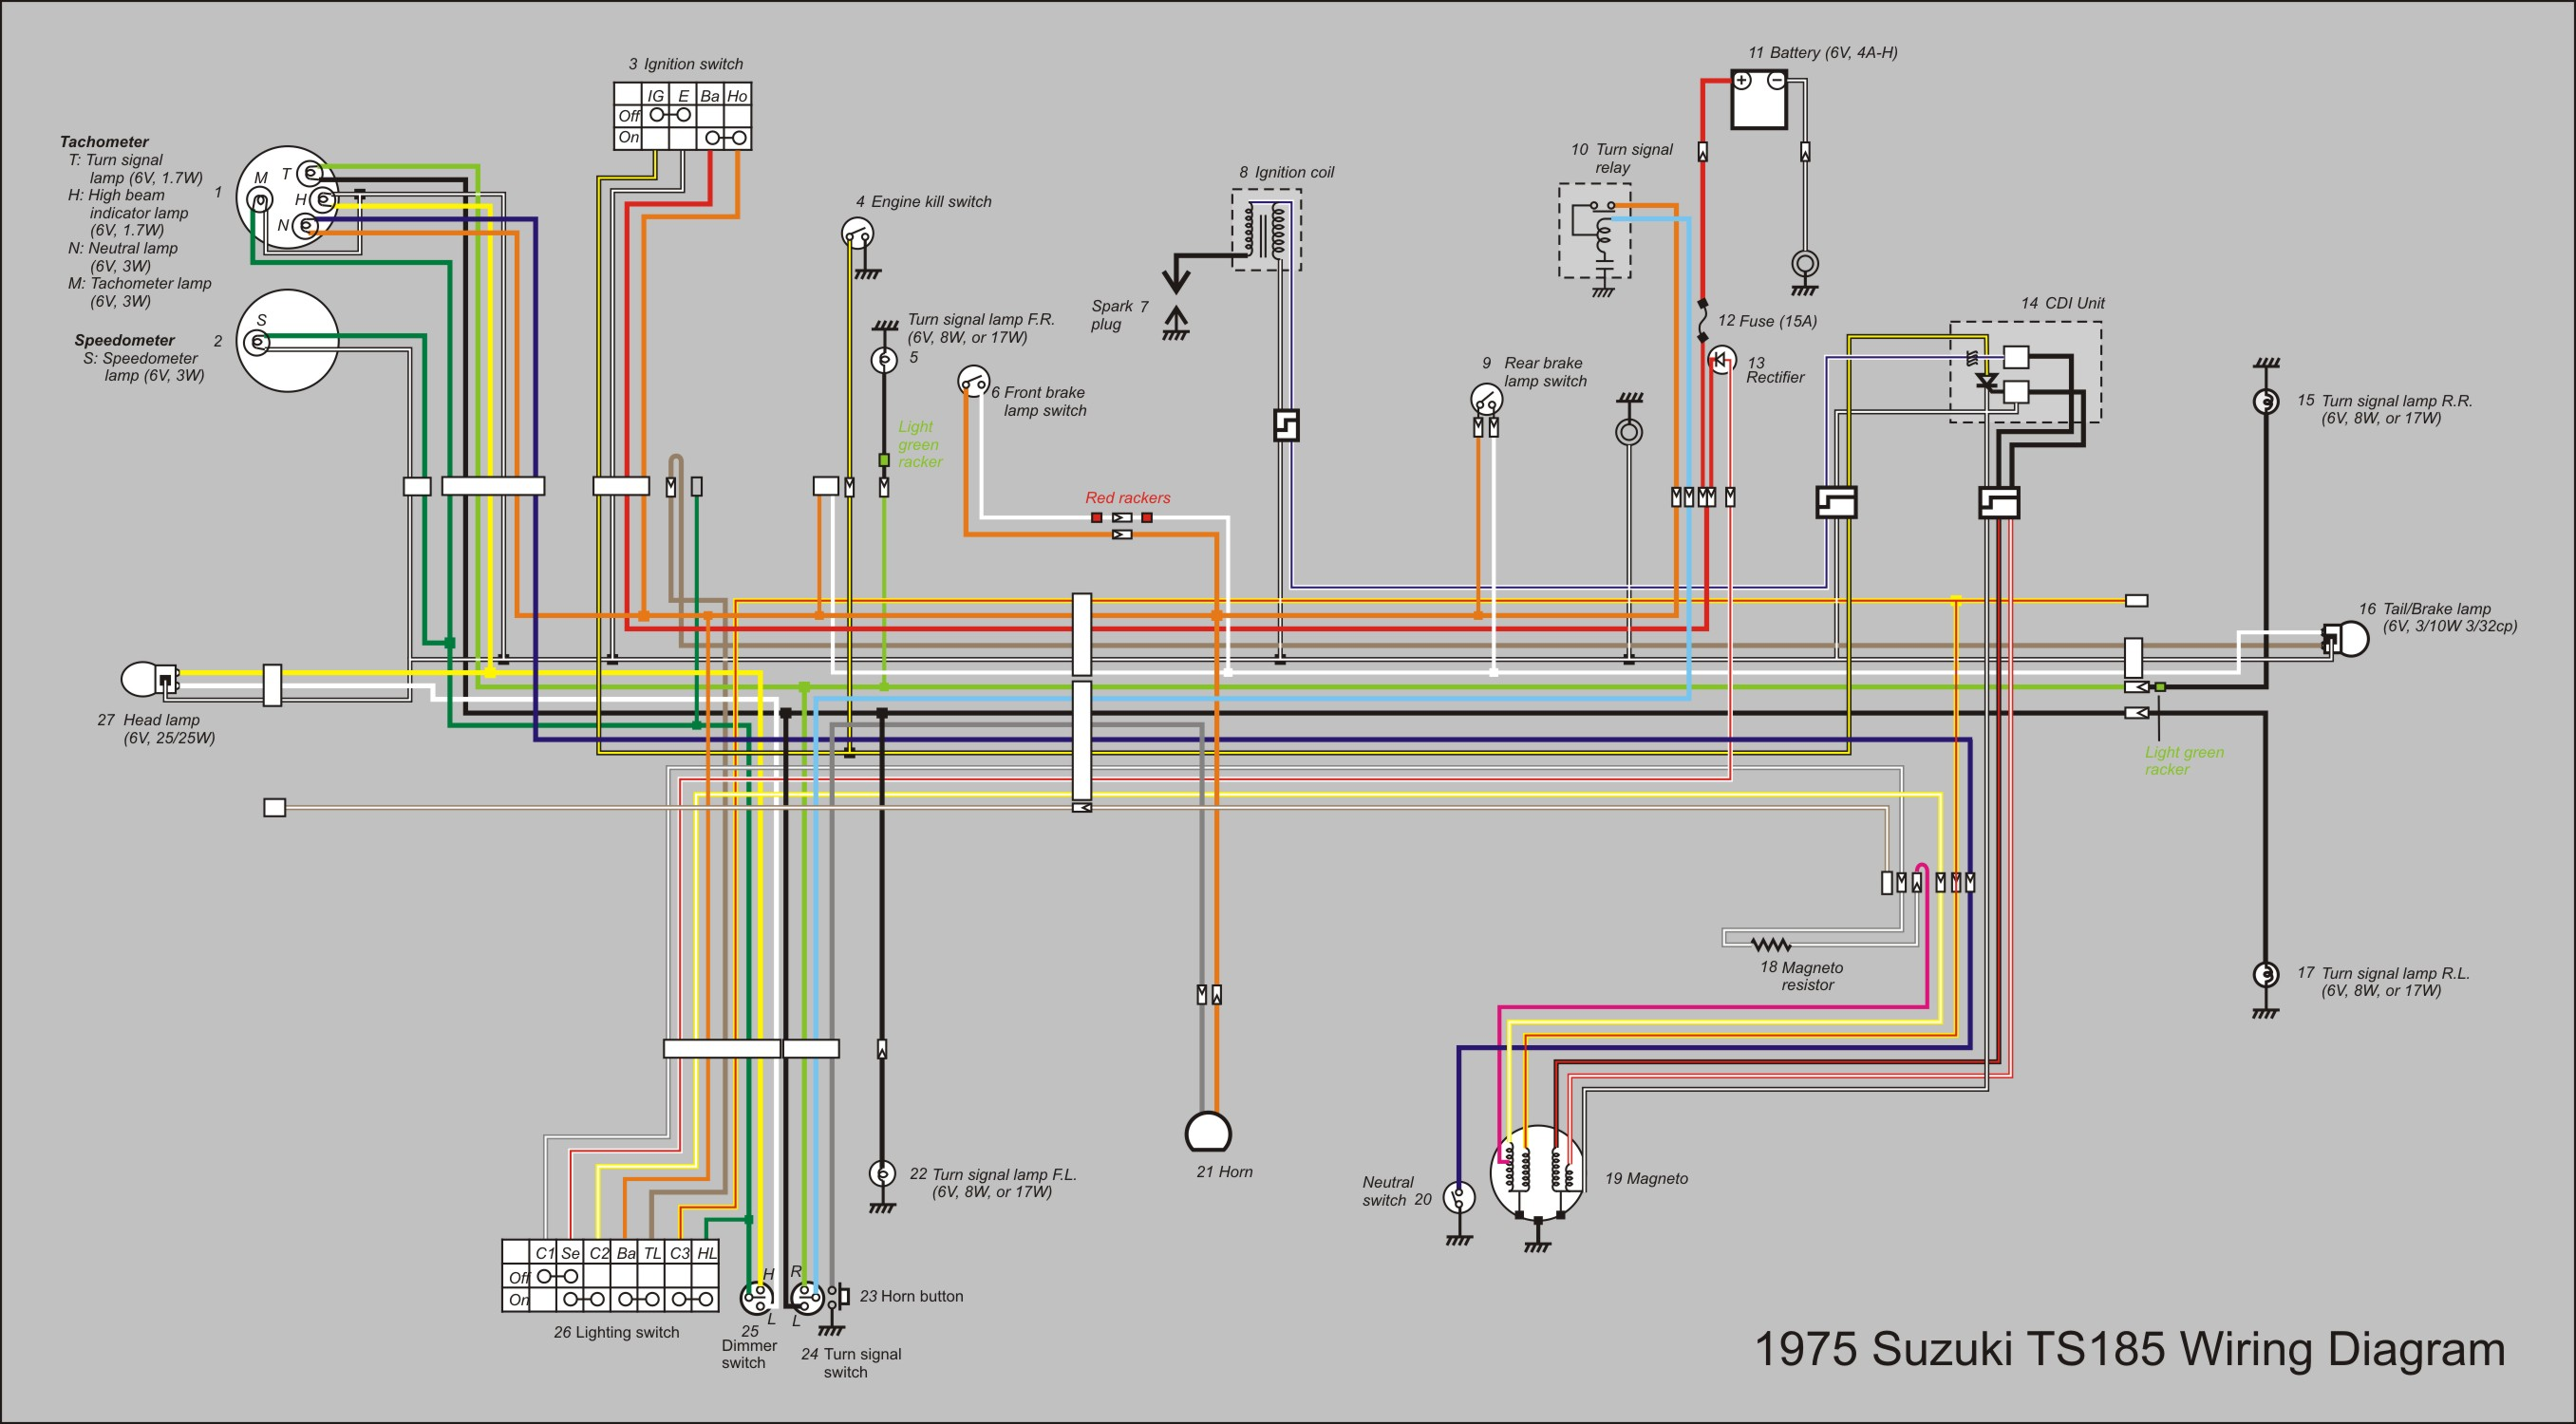 Filets185 Wiring Diagram New Wikimedia Commons For 03